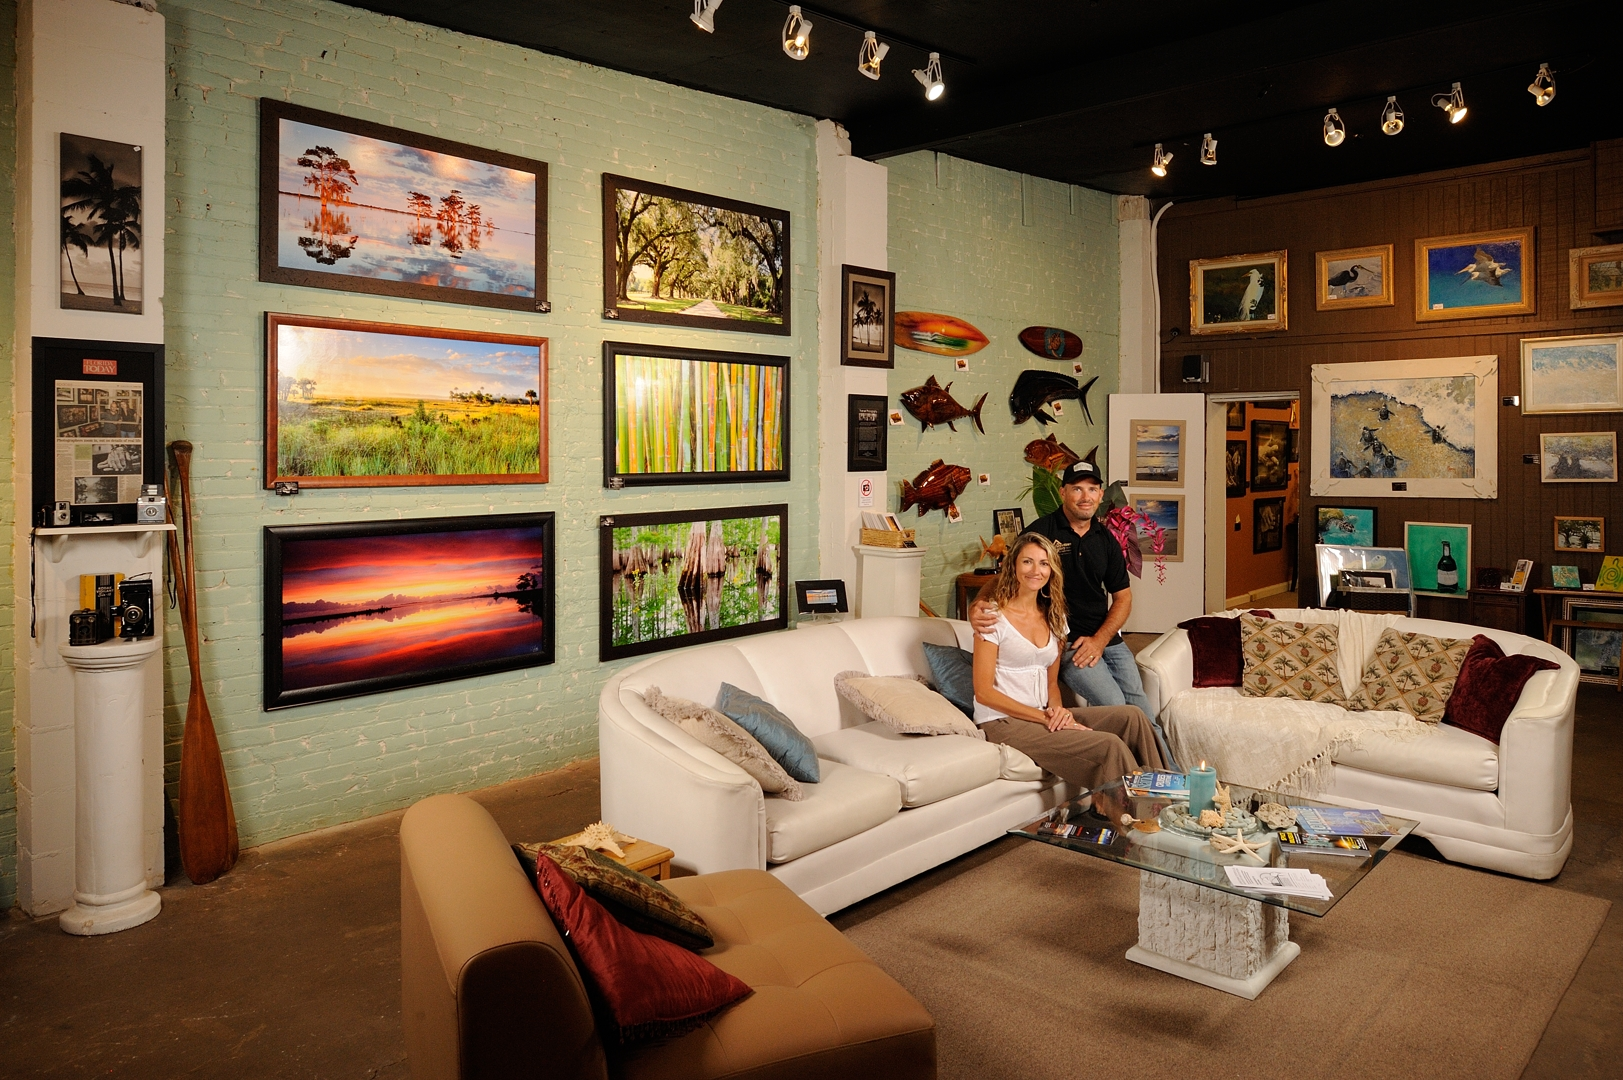 Heidi & Jeff Thamert (Owners) welcome you to the Downtown Art Gallery